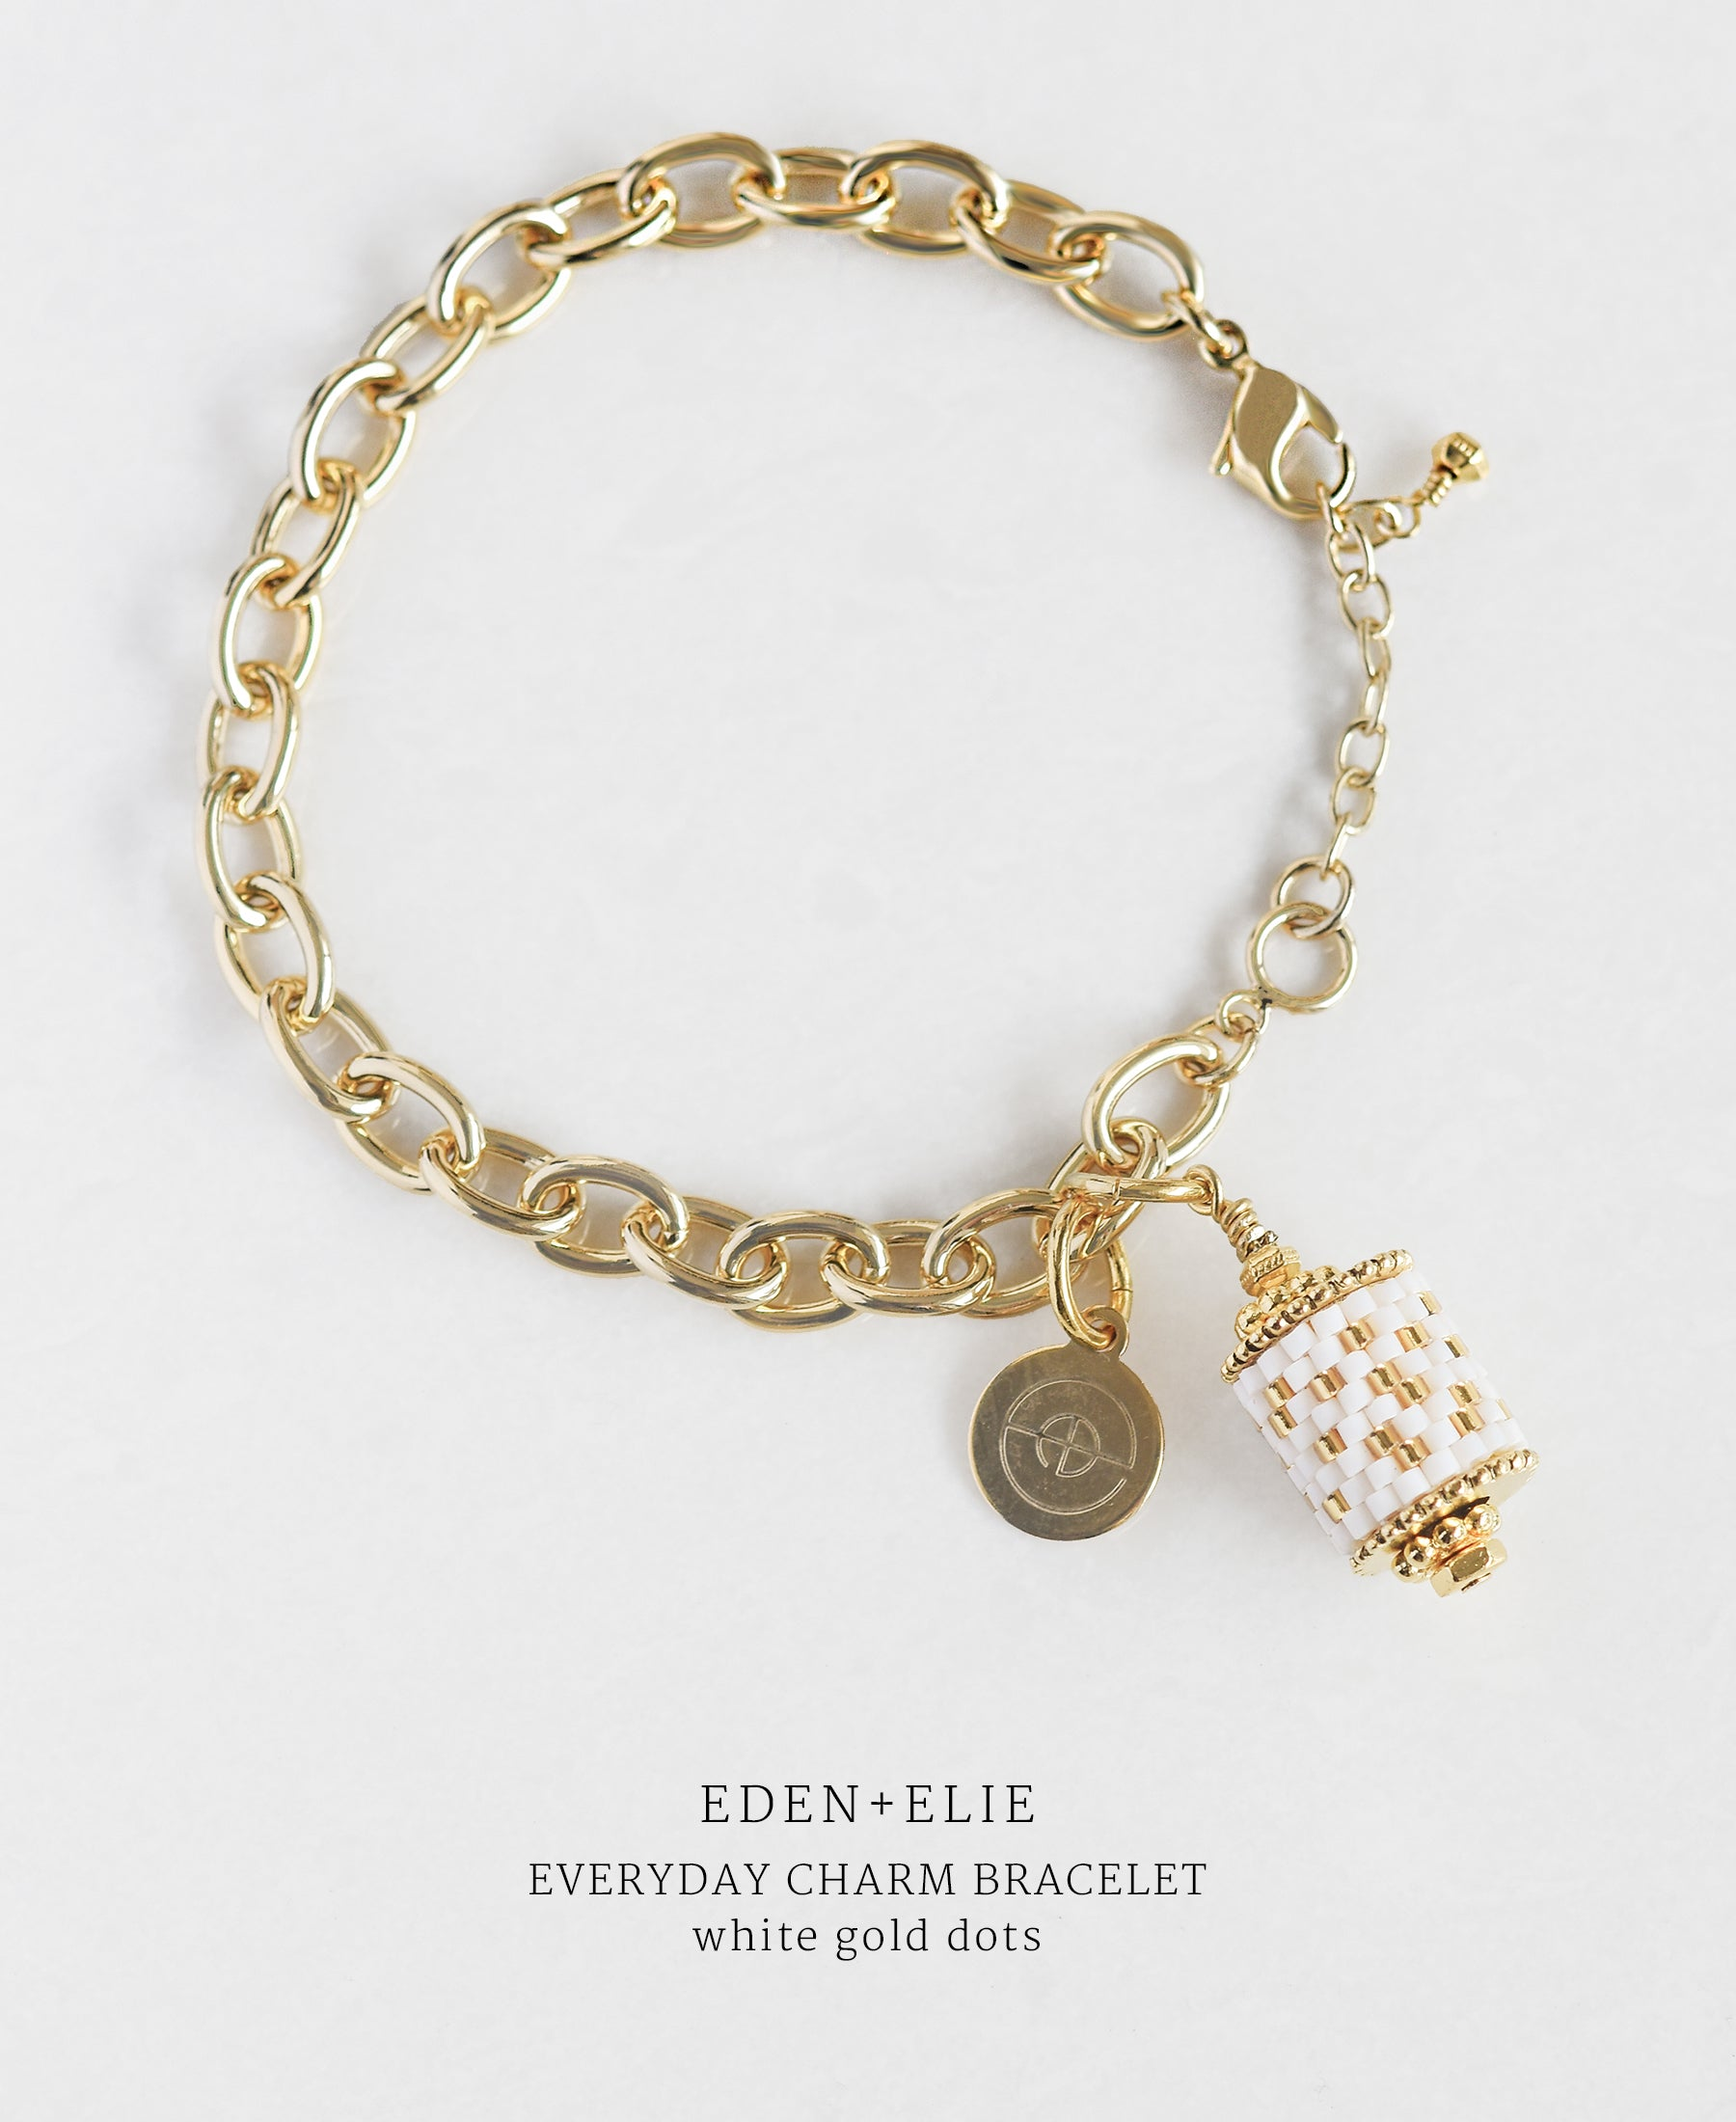 EDEN + ELIE Everyday gold charm bracelet - white gold dots